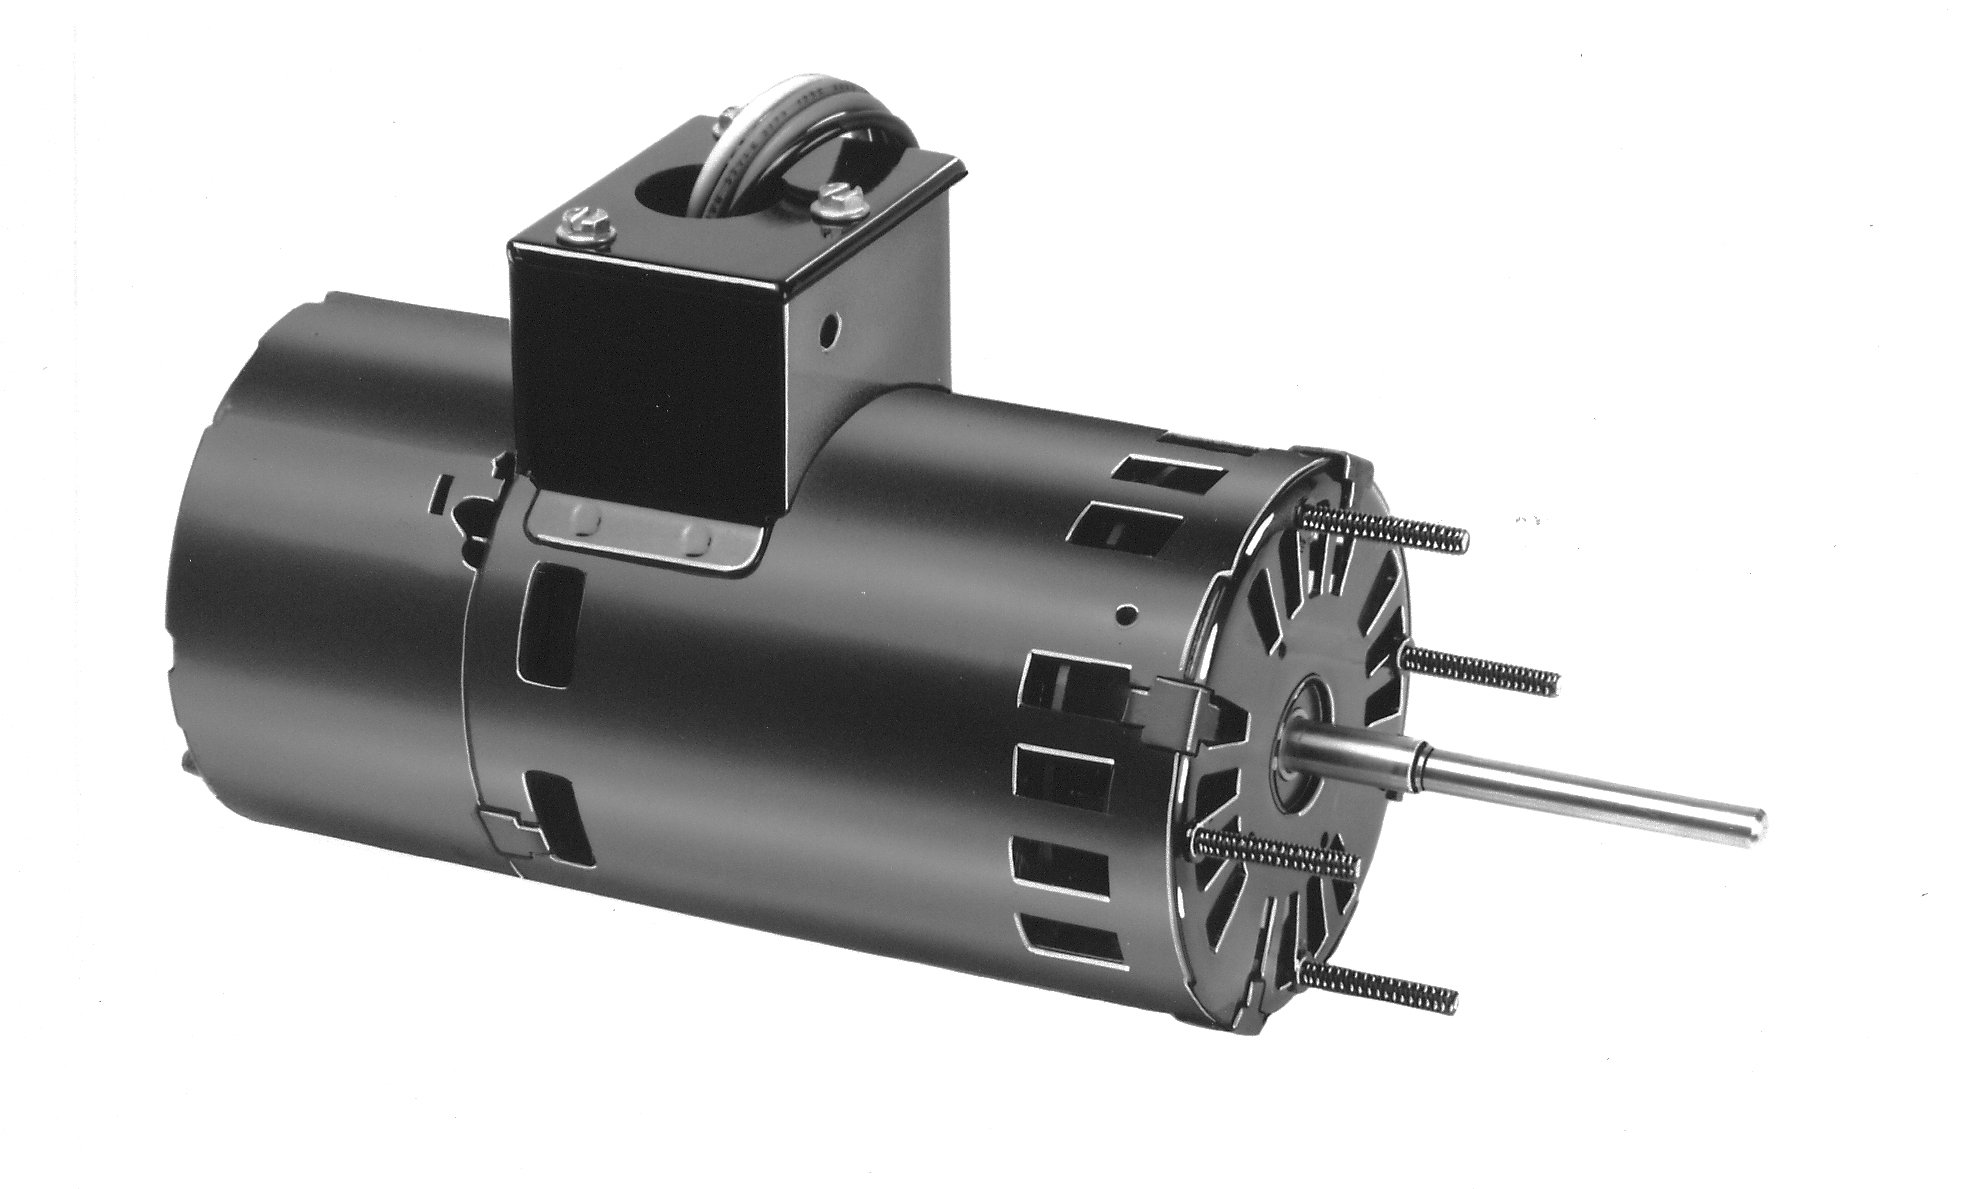 Fasco D1178 3.3'' Frame Open Ventilated Permanent Split Capacitor OEM Replacement Motor withSleeve Bearing, 1/16HP, 3450rpm, 208-230V, 60Hz, 0.57 amps